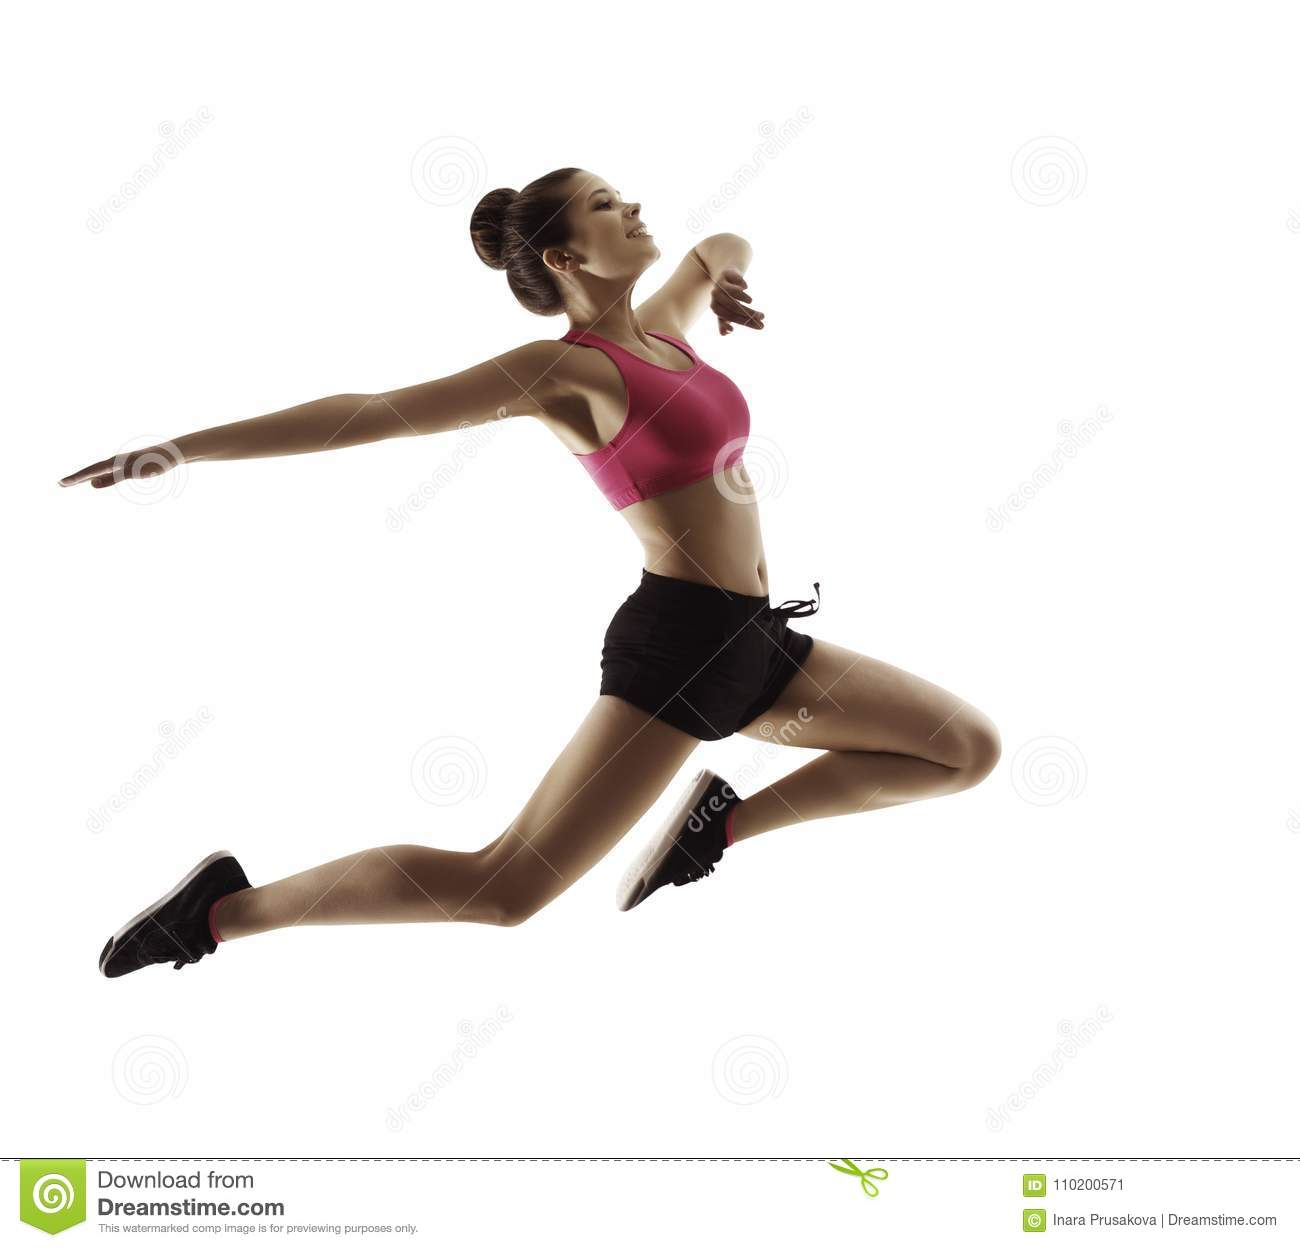 Jumping Sport Woman, Happy Fitness Girl in Jump, Active People